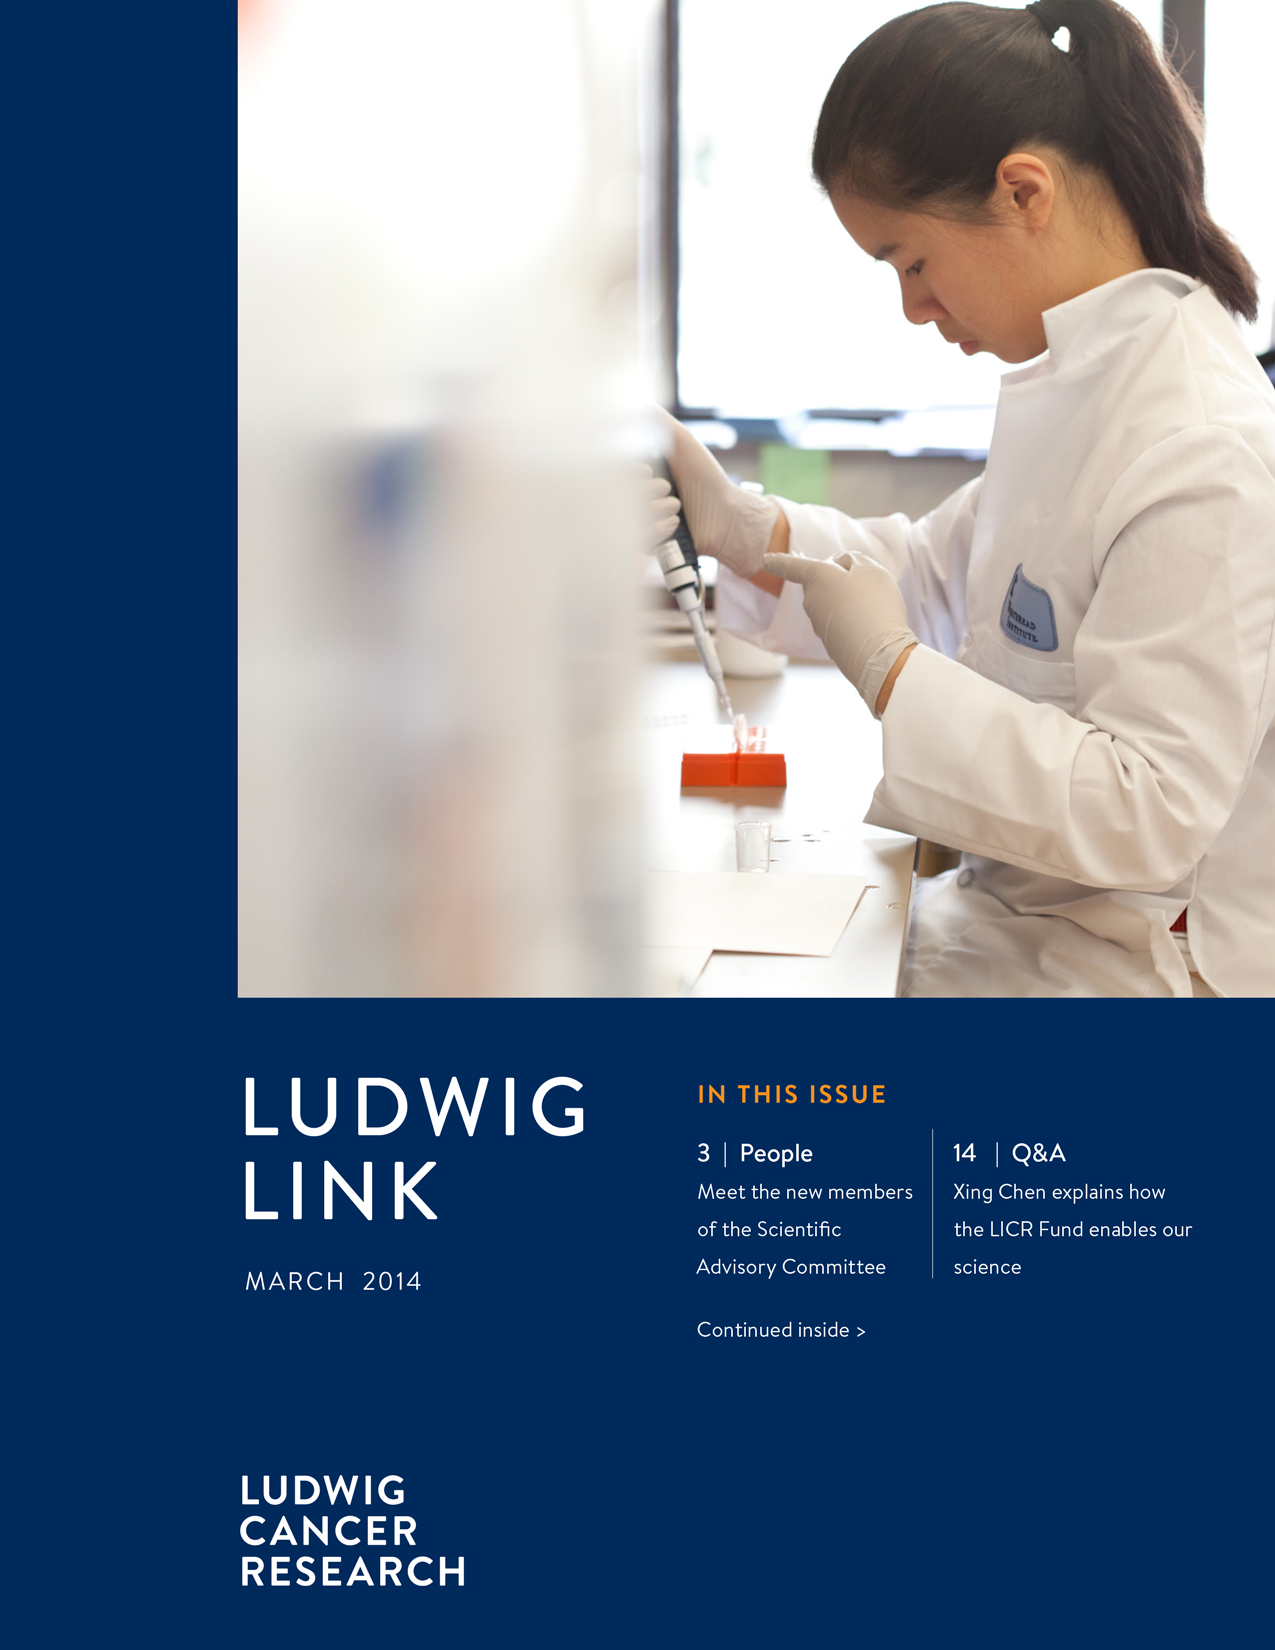 Ludwig Link March 2014 cover